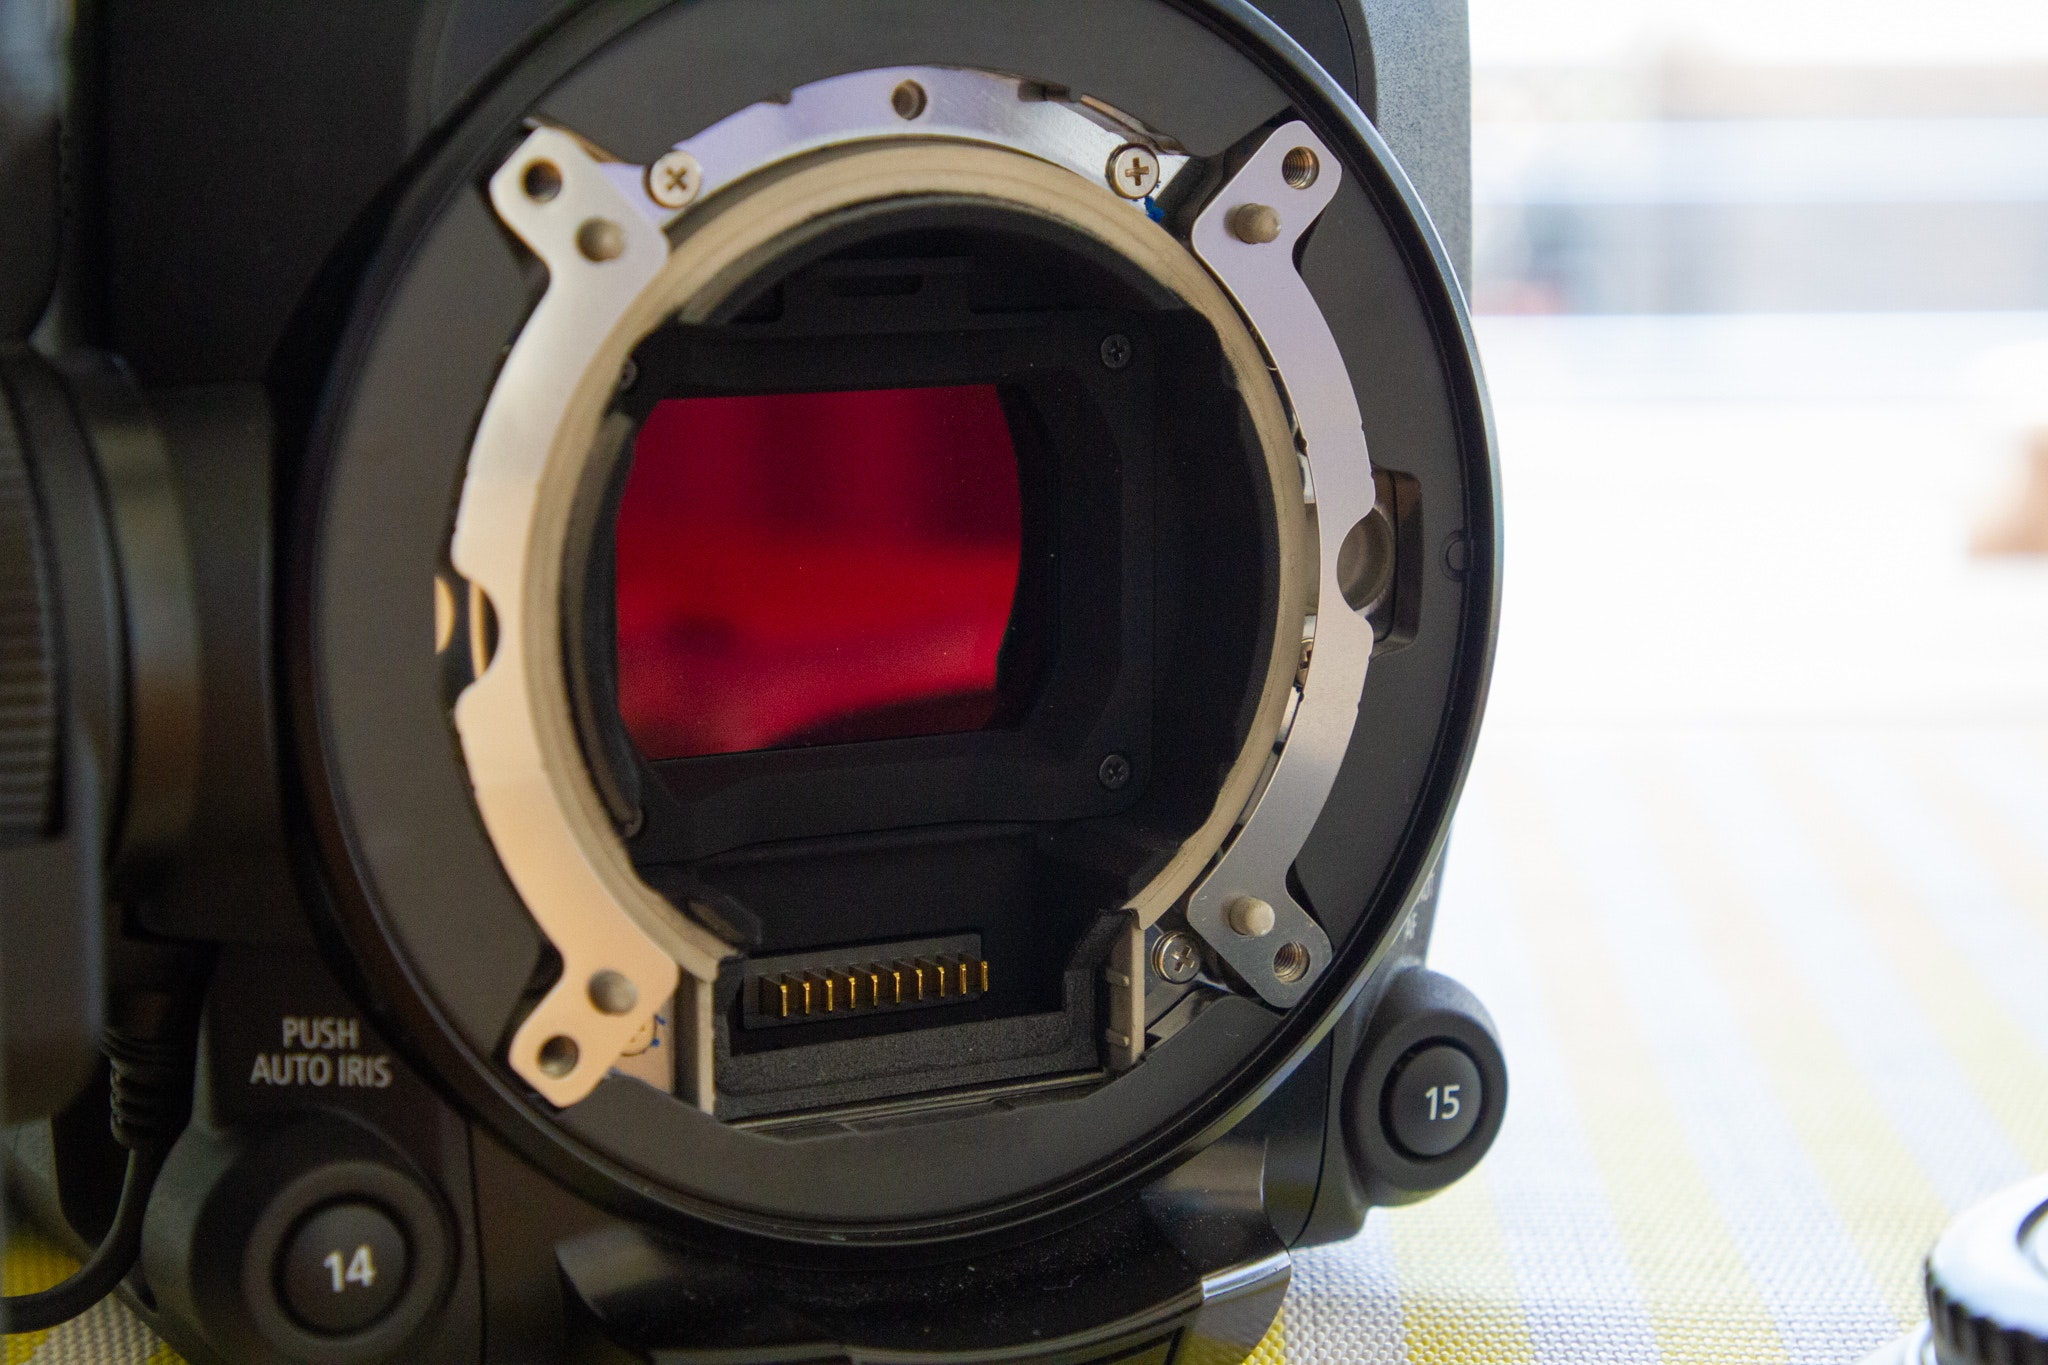 C300mkIII without Lens mount